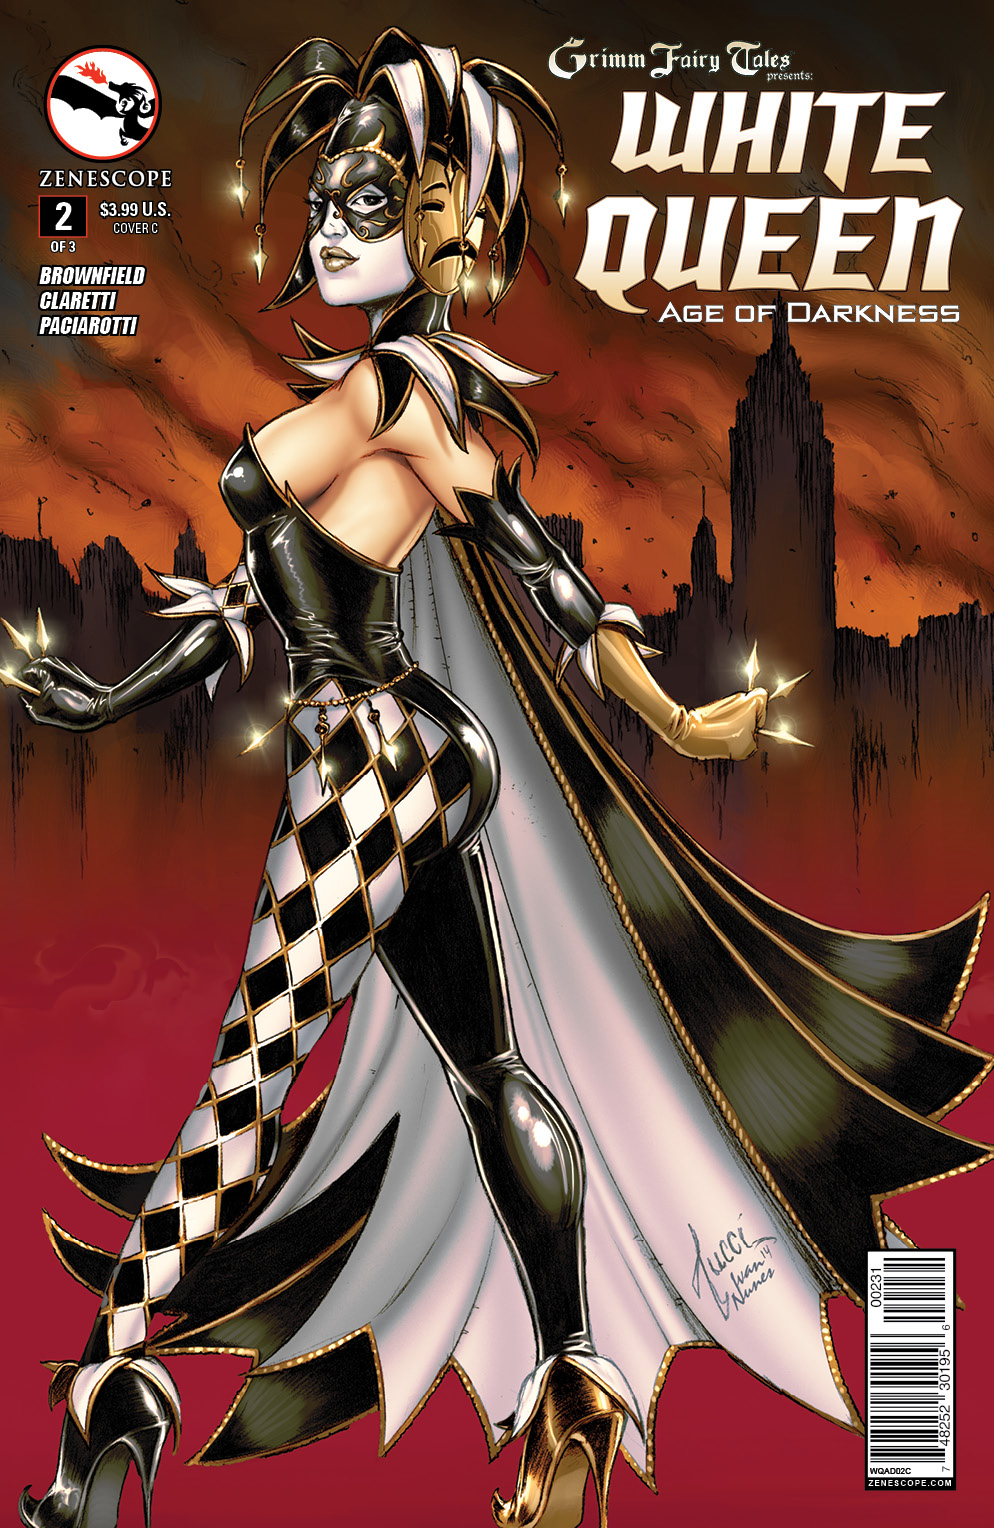 WhiteQueen_AOD_02_cover C